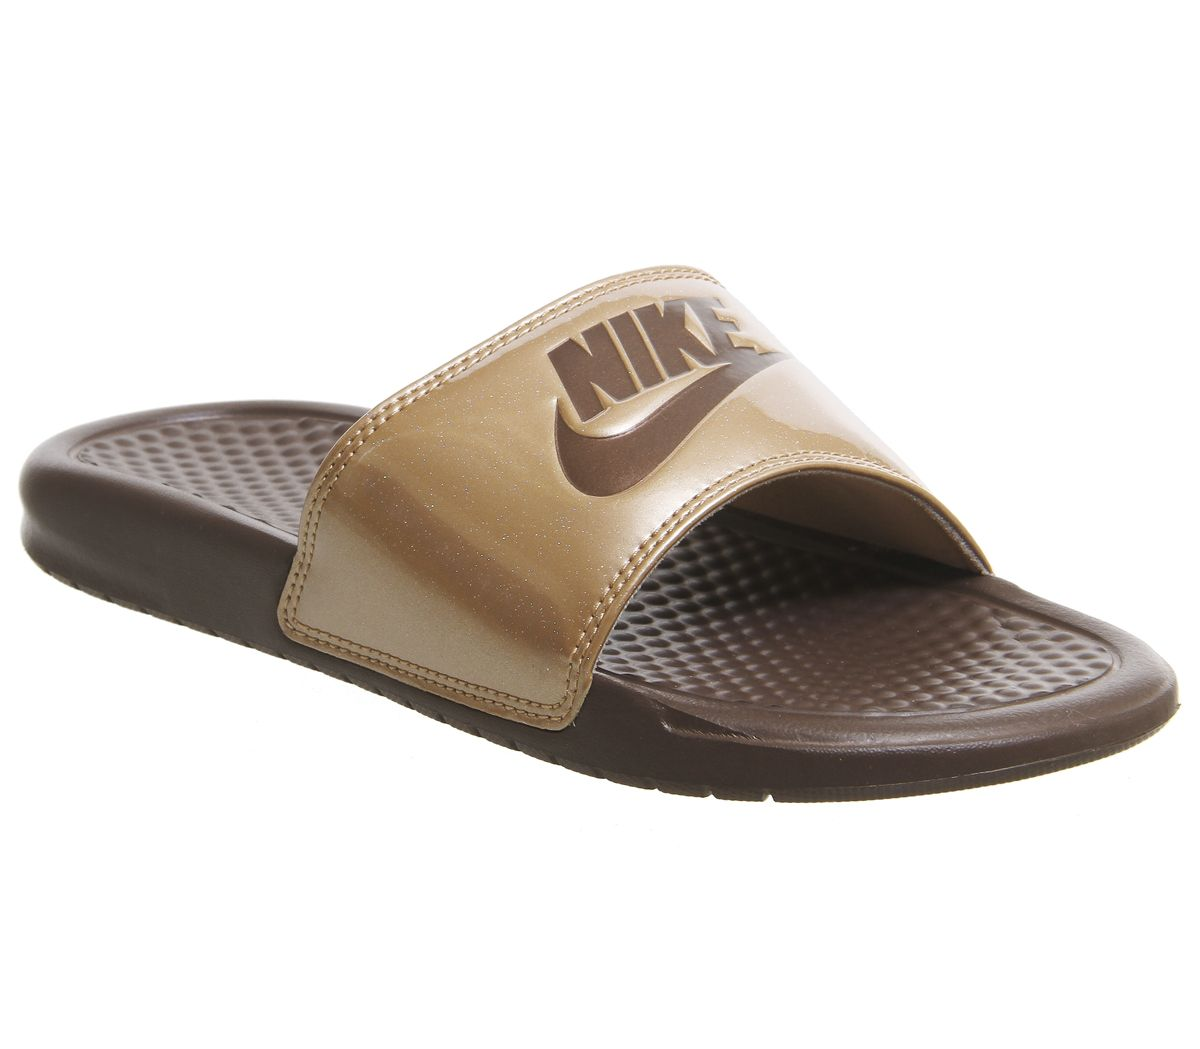 separation shoes 892a8 32571 Womens Benassi Sliders